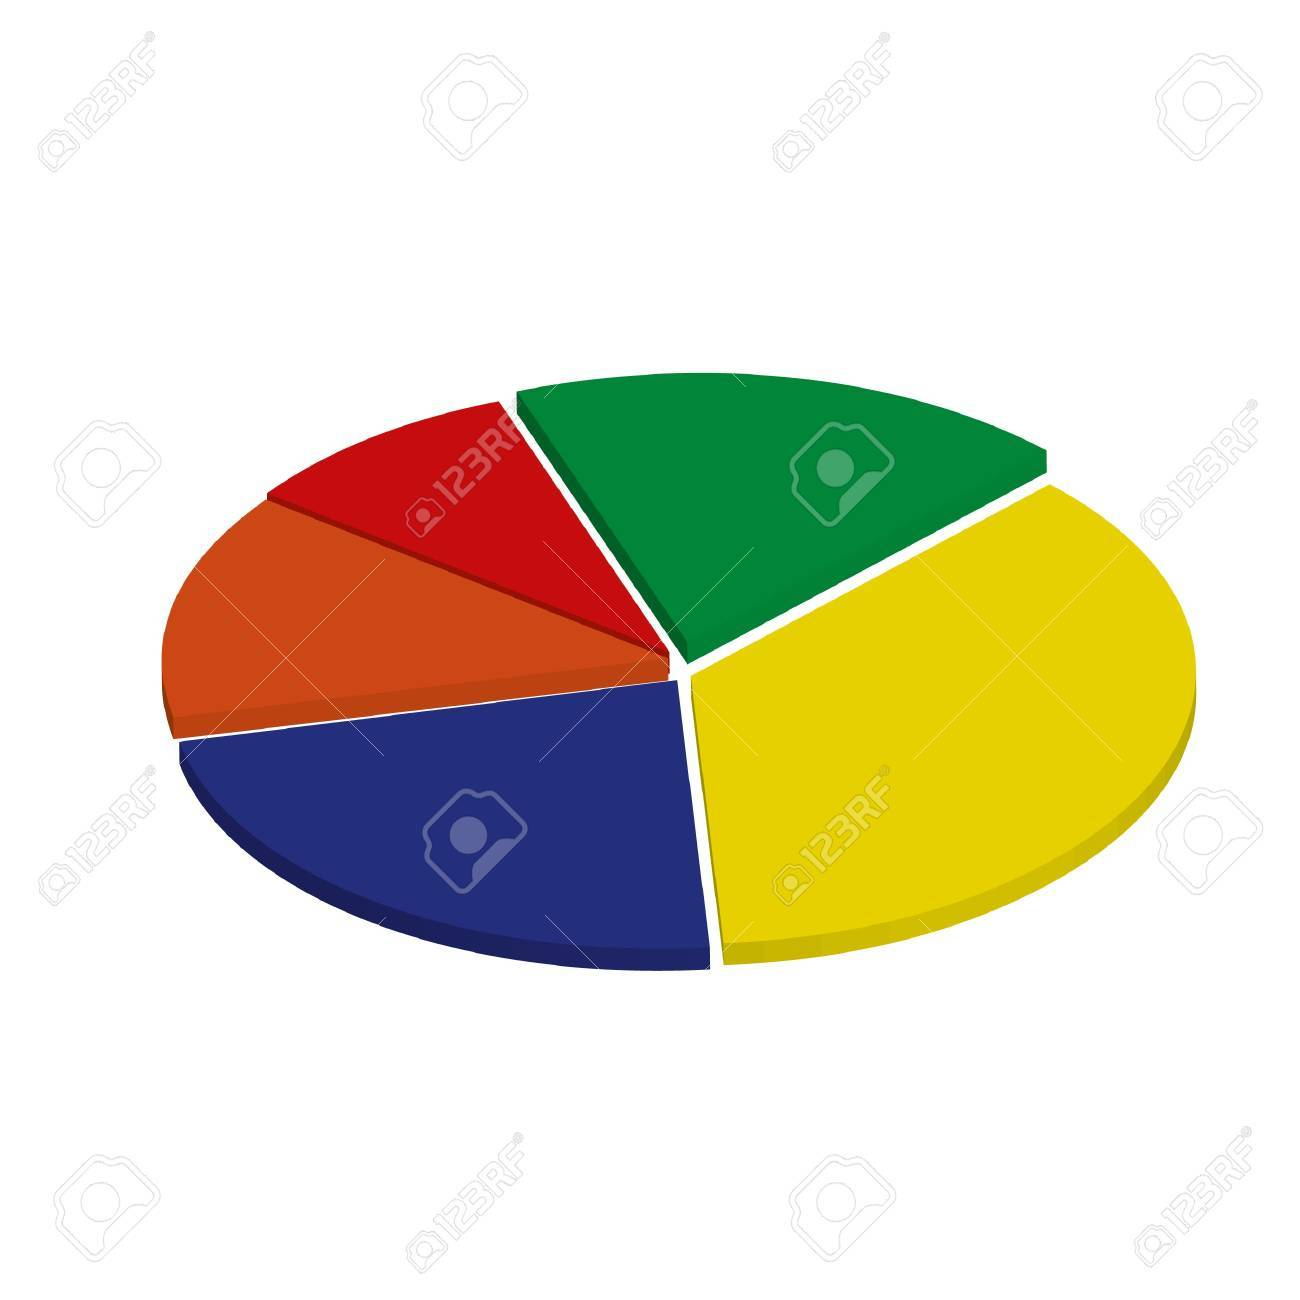 5 color 3d pie chart stock photo picture and royalty free image 5 color 3d pie chart stock photo 18853858 geenschuldenfo Image collections